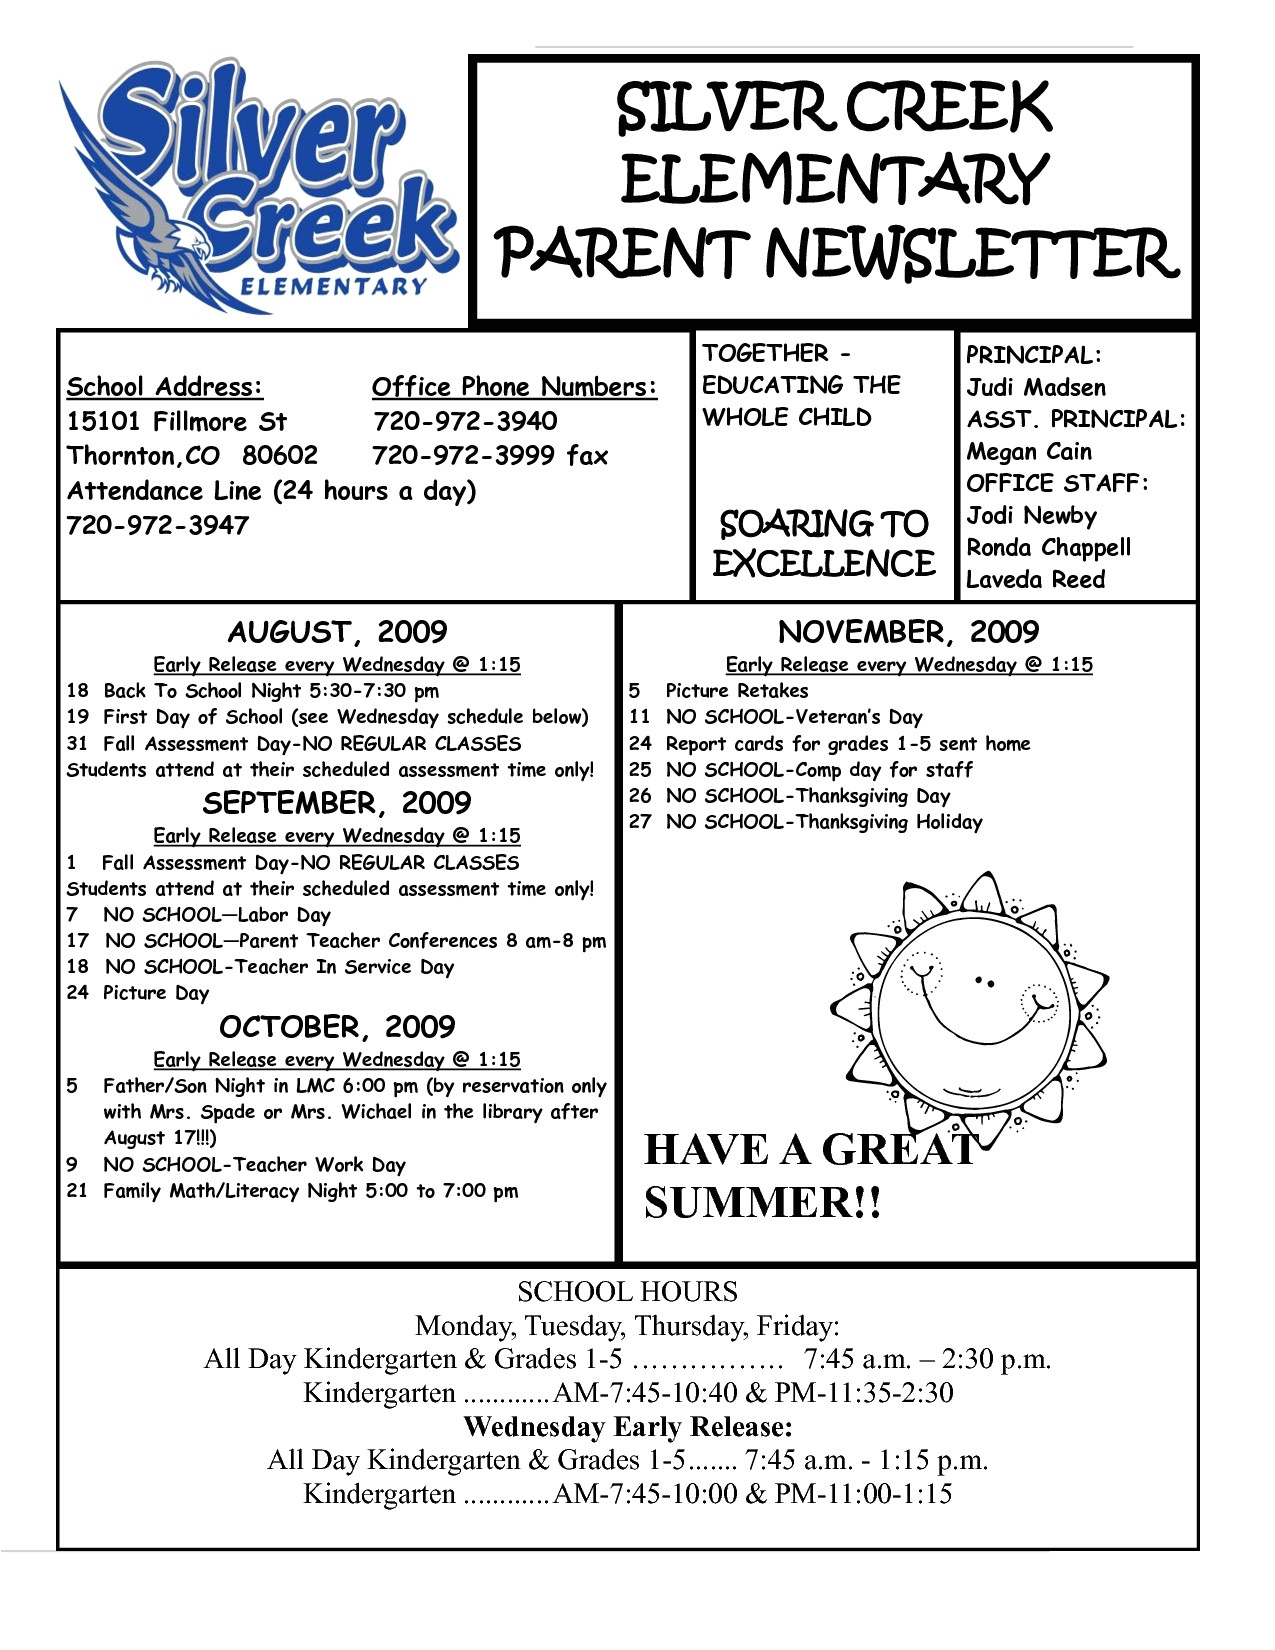 employee newsletter templates awesome 5th grade newsletter template inspirational unique newspaper